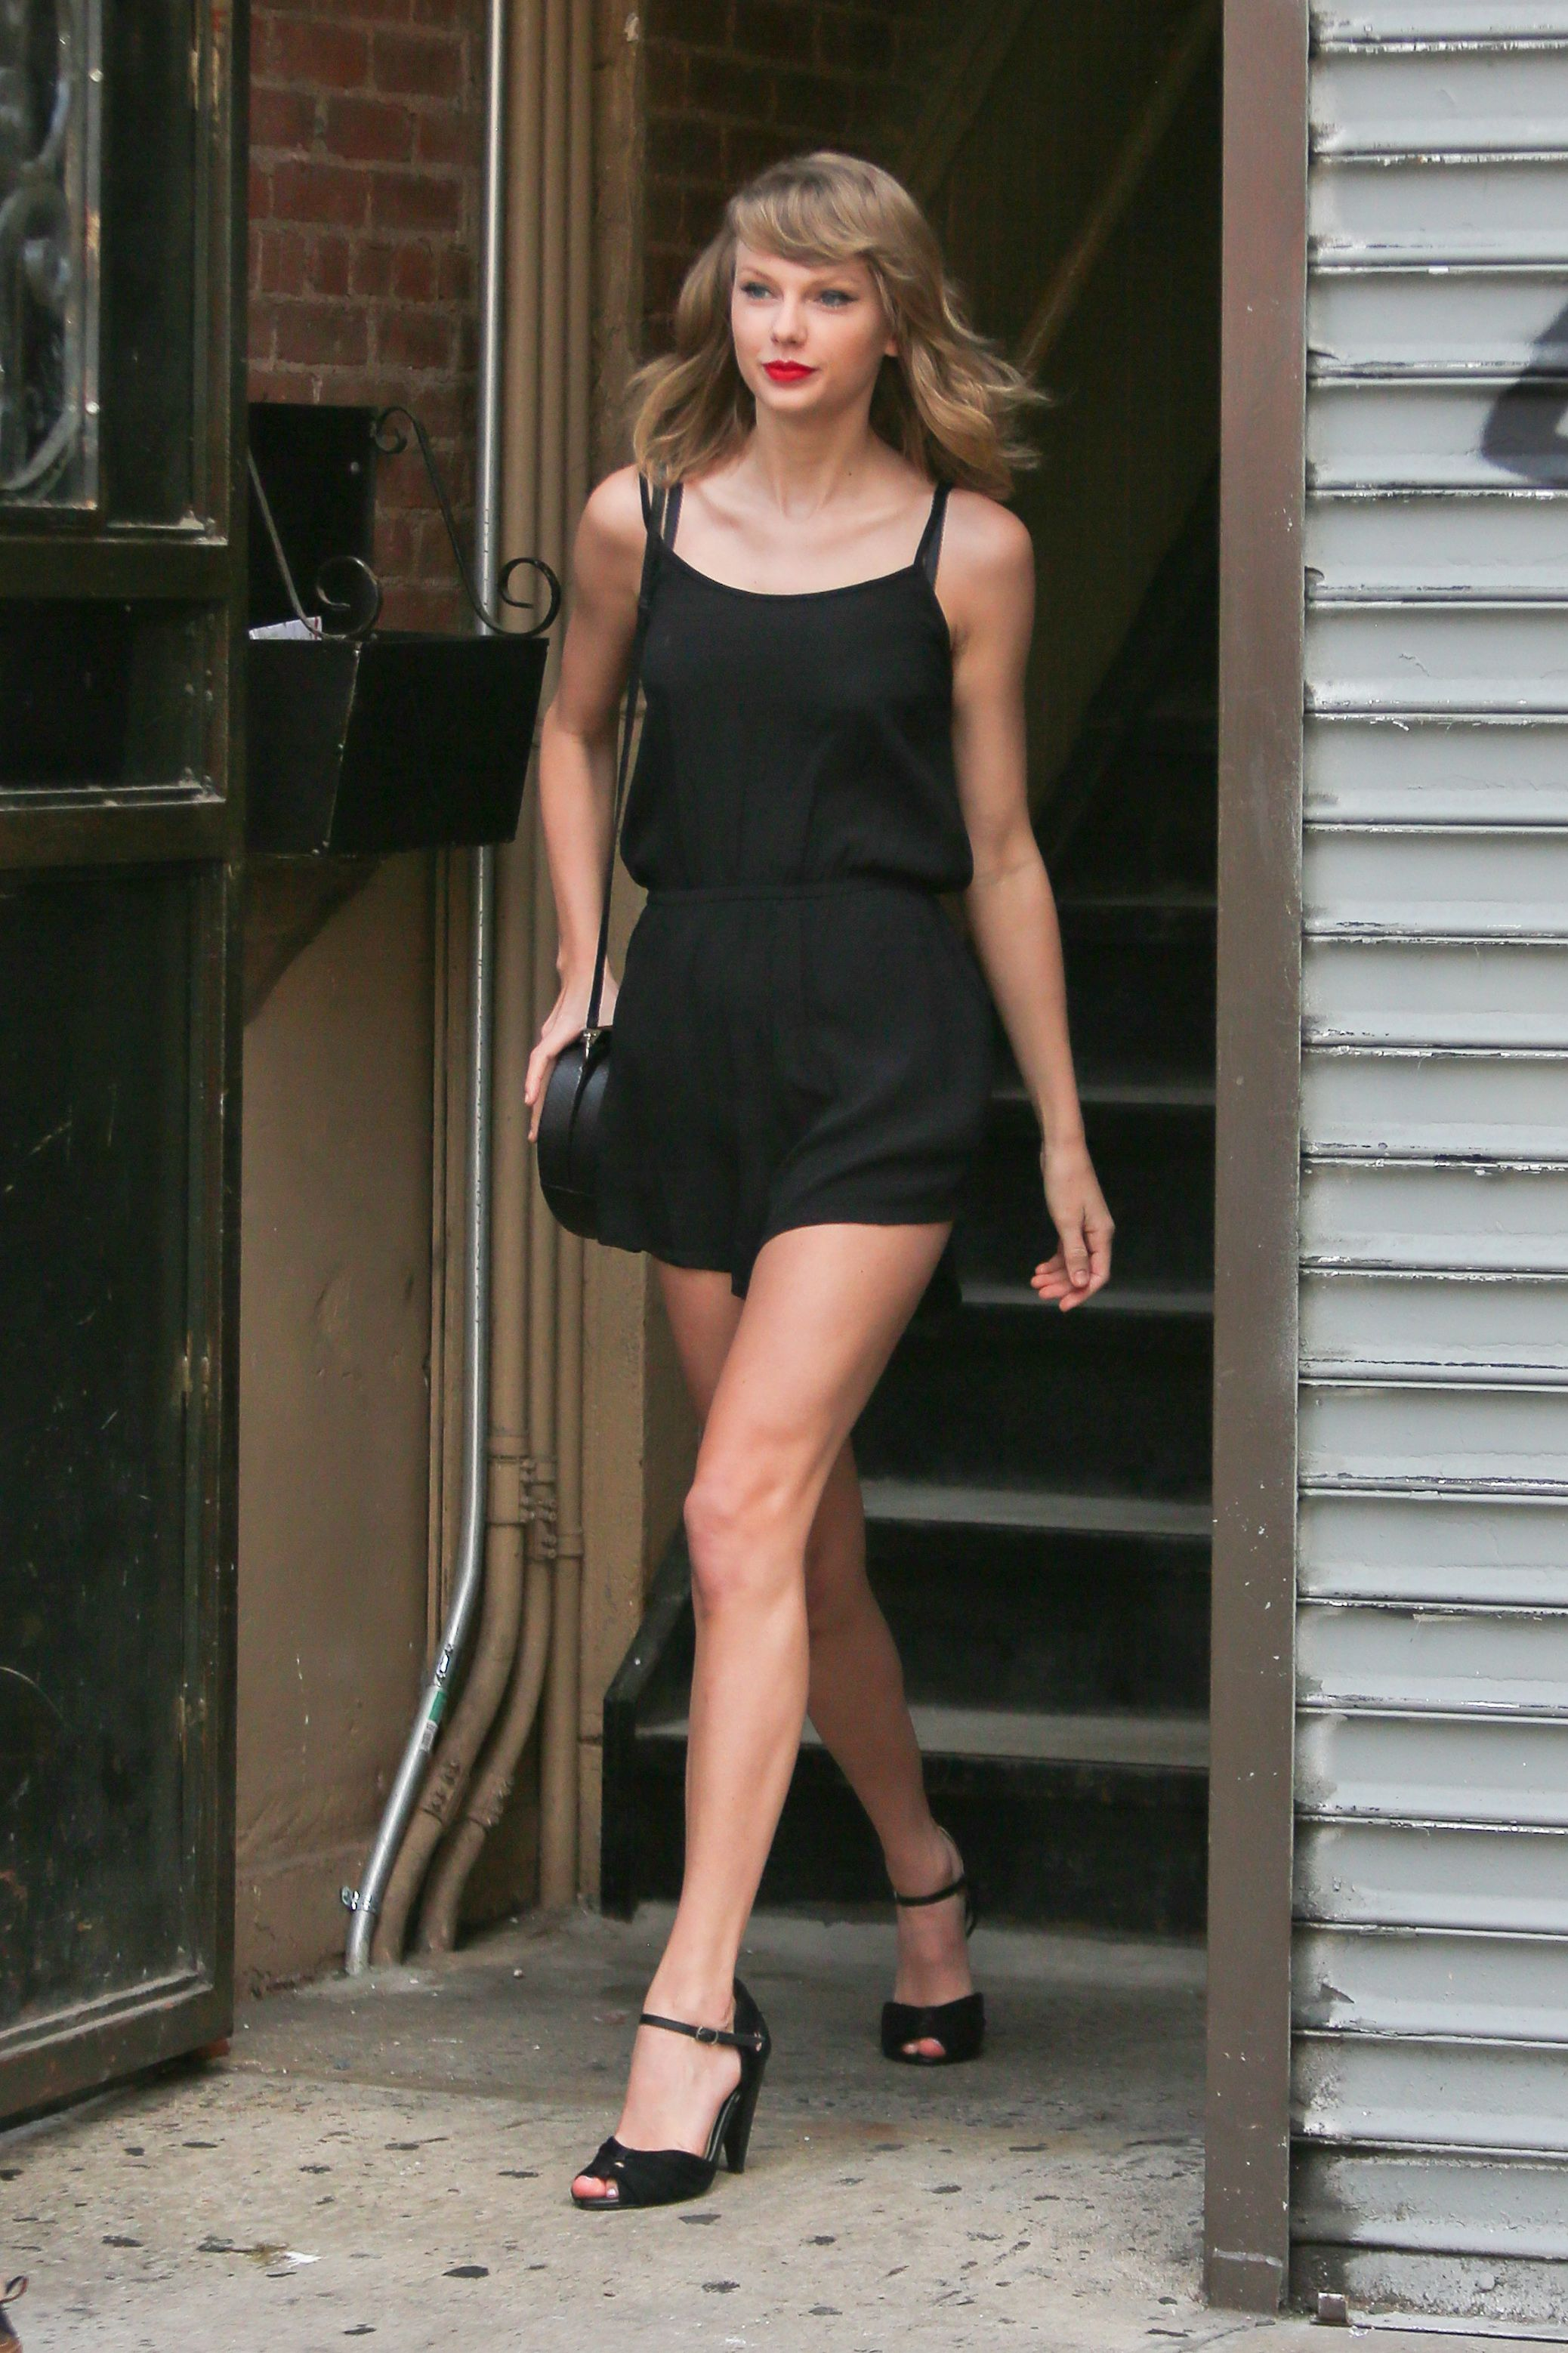 Pin by bellissimo on TAYLOR SWIFT | Taylor swift street ...